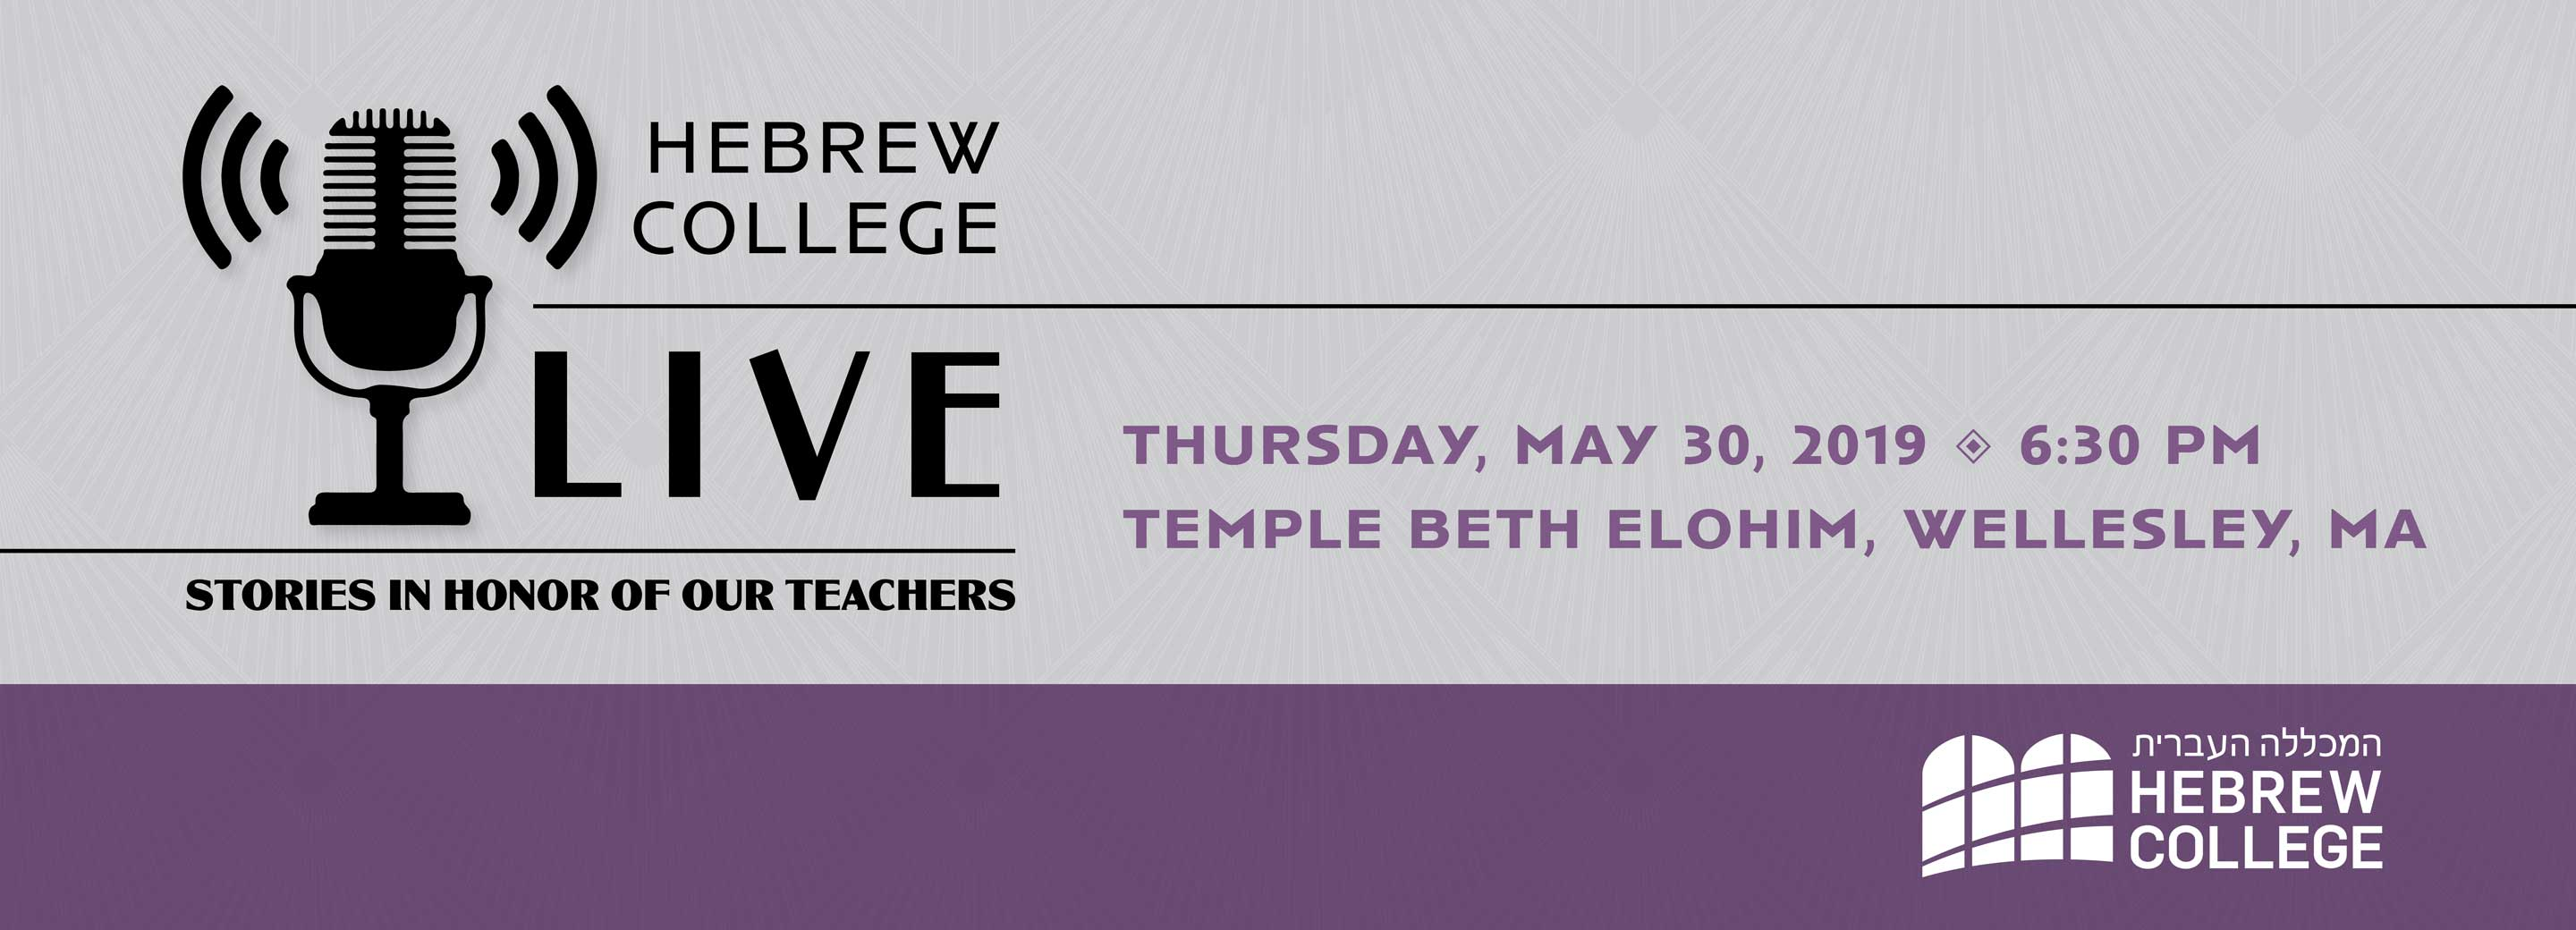 Hebrew College Live: Stories in Honor of Our Teachers banner